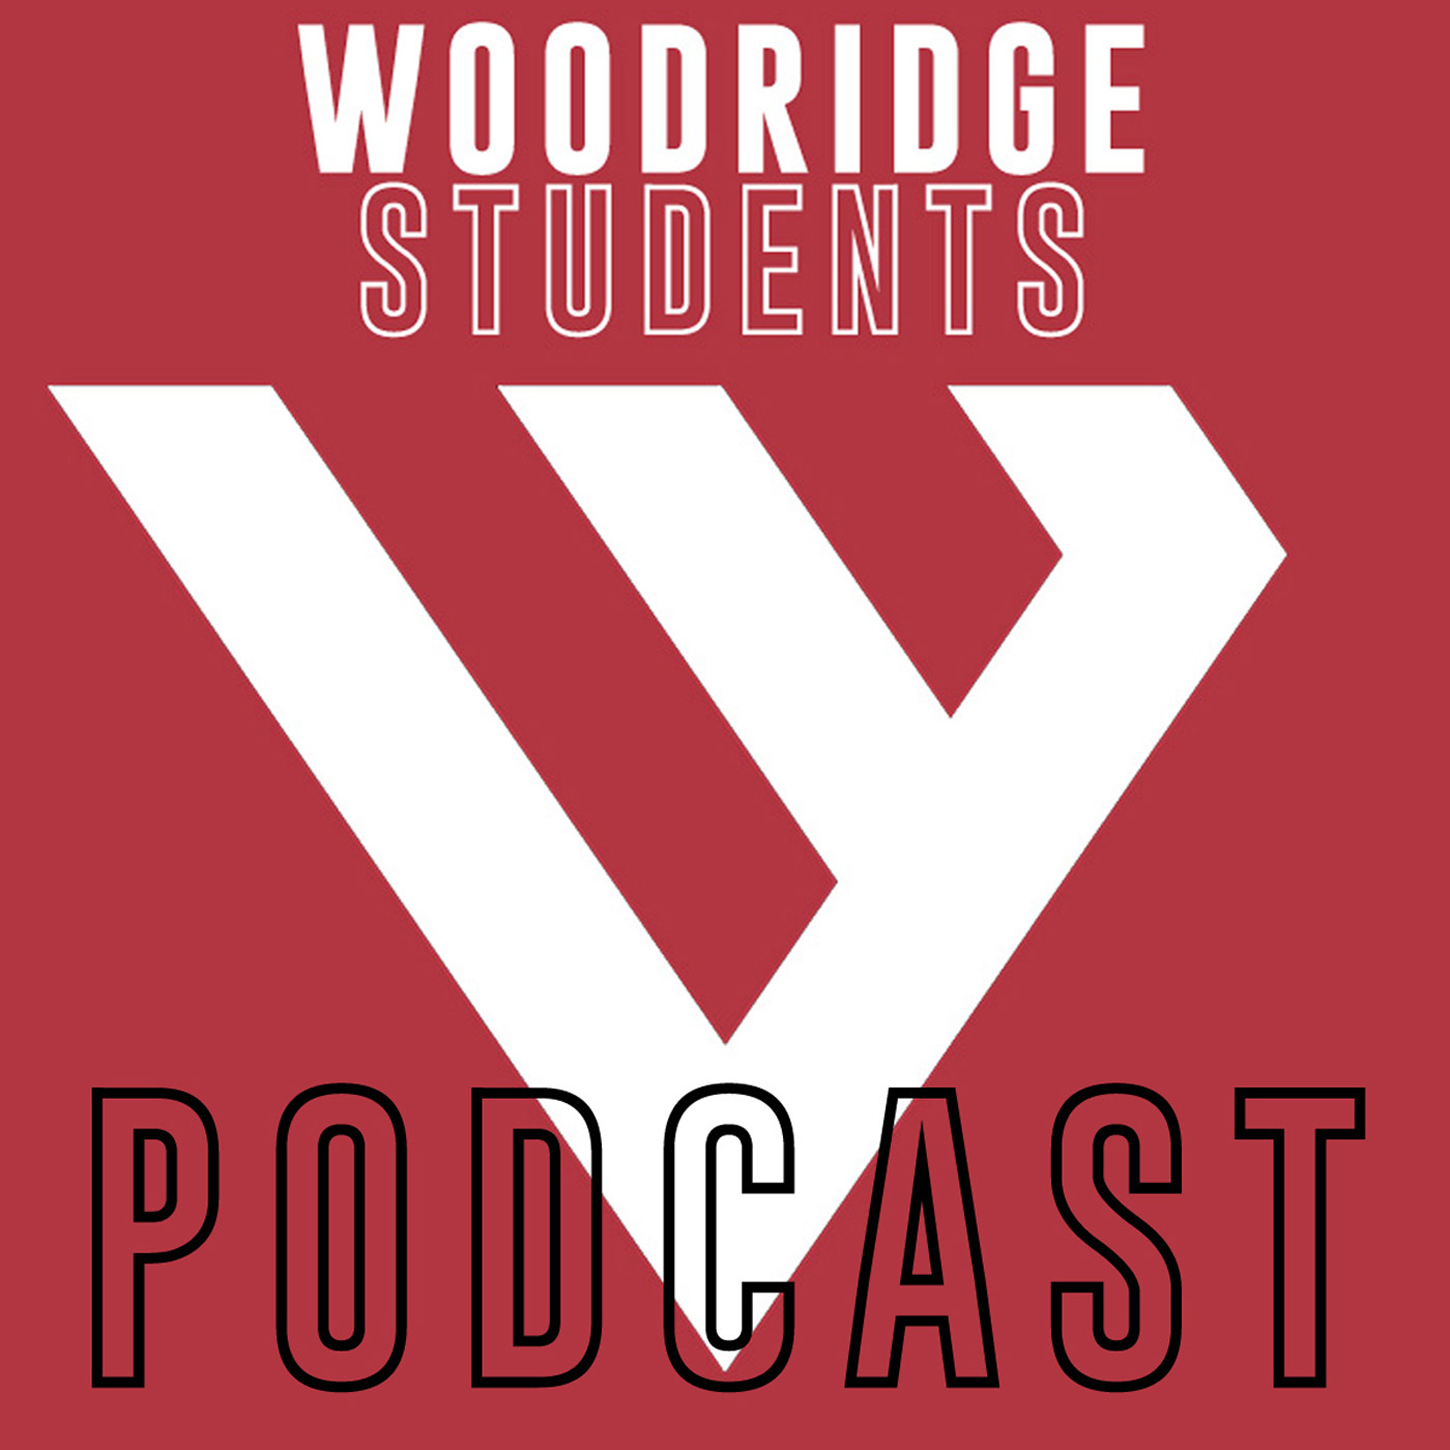 Woodridge Students Podcast